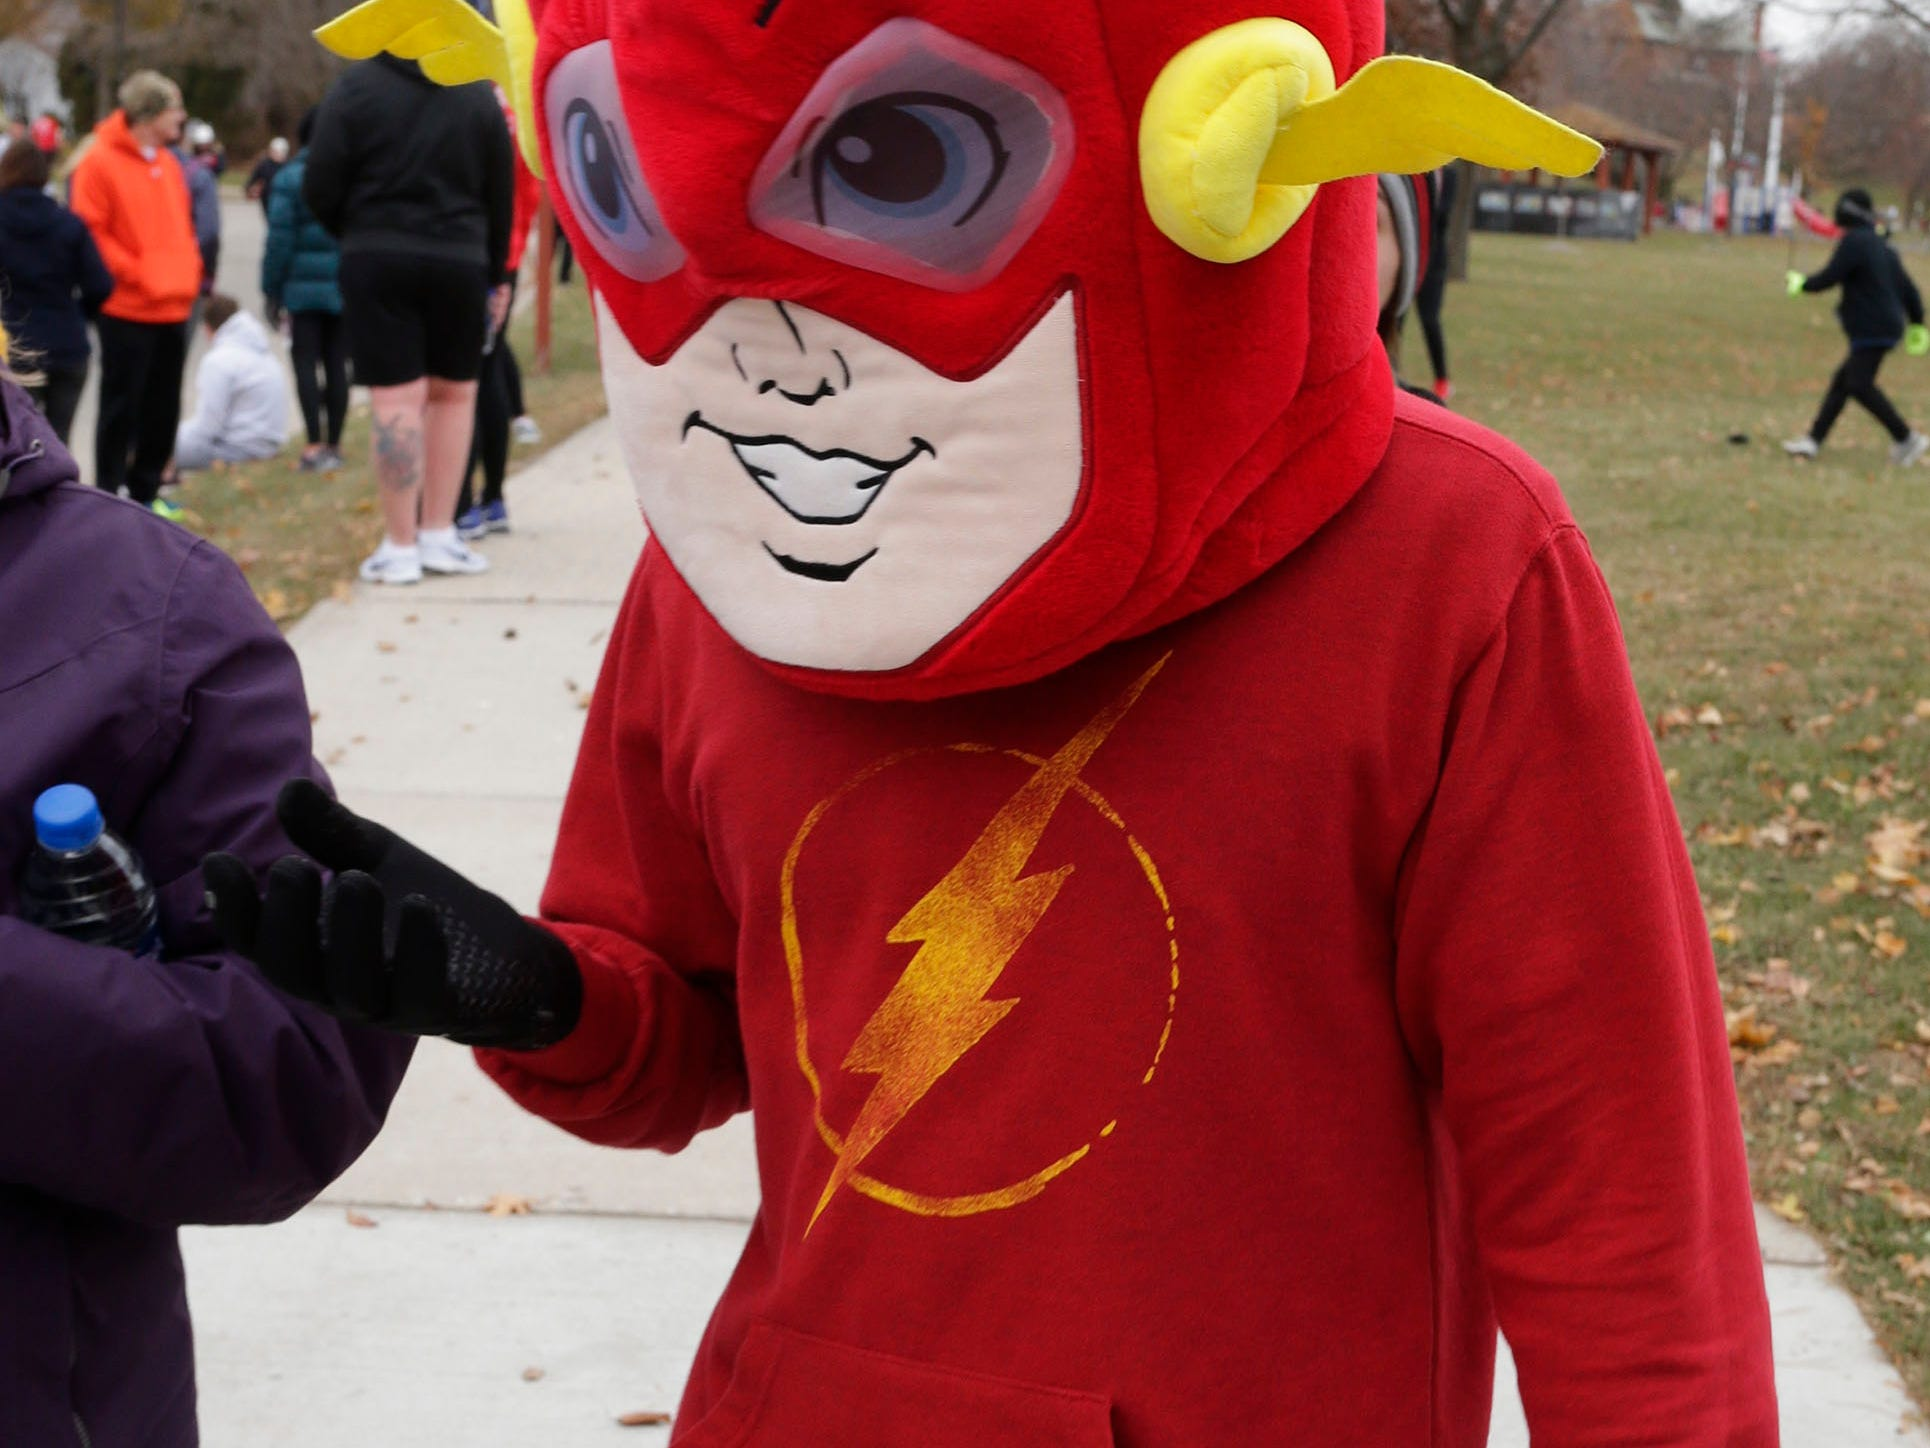 Even a superhero participated at the Doug Opel Run for the Kids, Thursday, November 22, 2018, in Sheboygan, Wis.